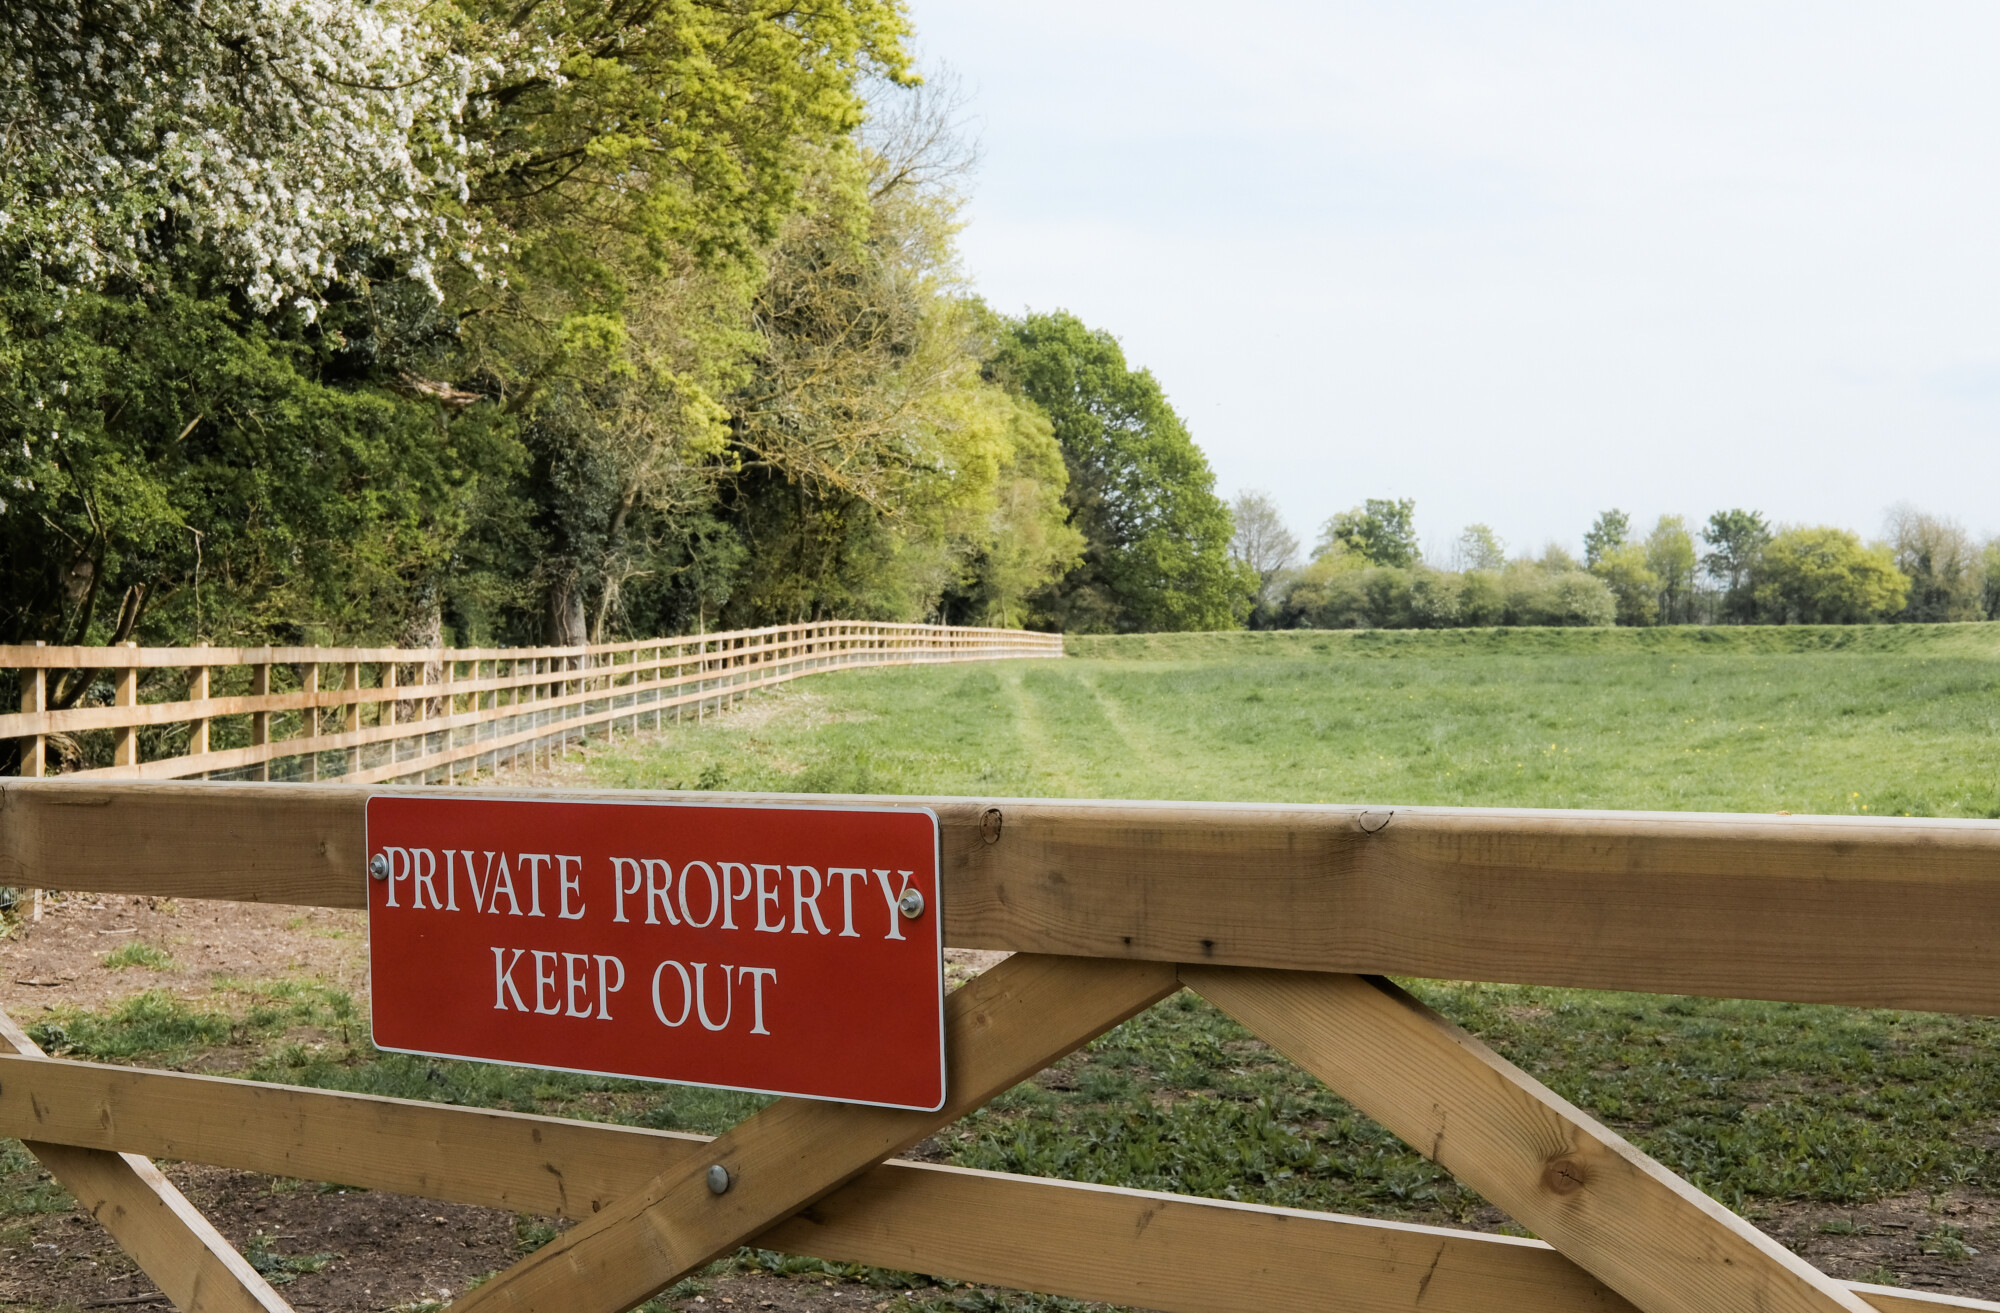 Newly installed Private Property sign erected onto a farm paddock gate in a rural location. Preventing rural crime